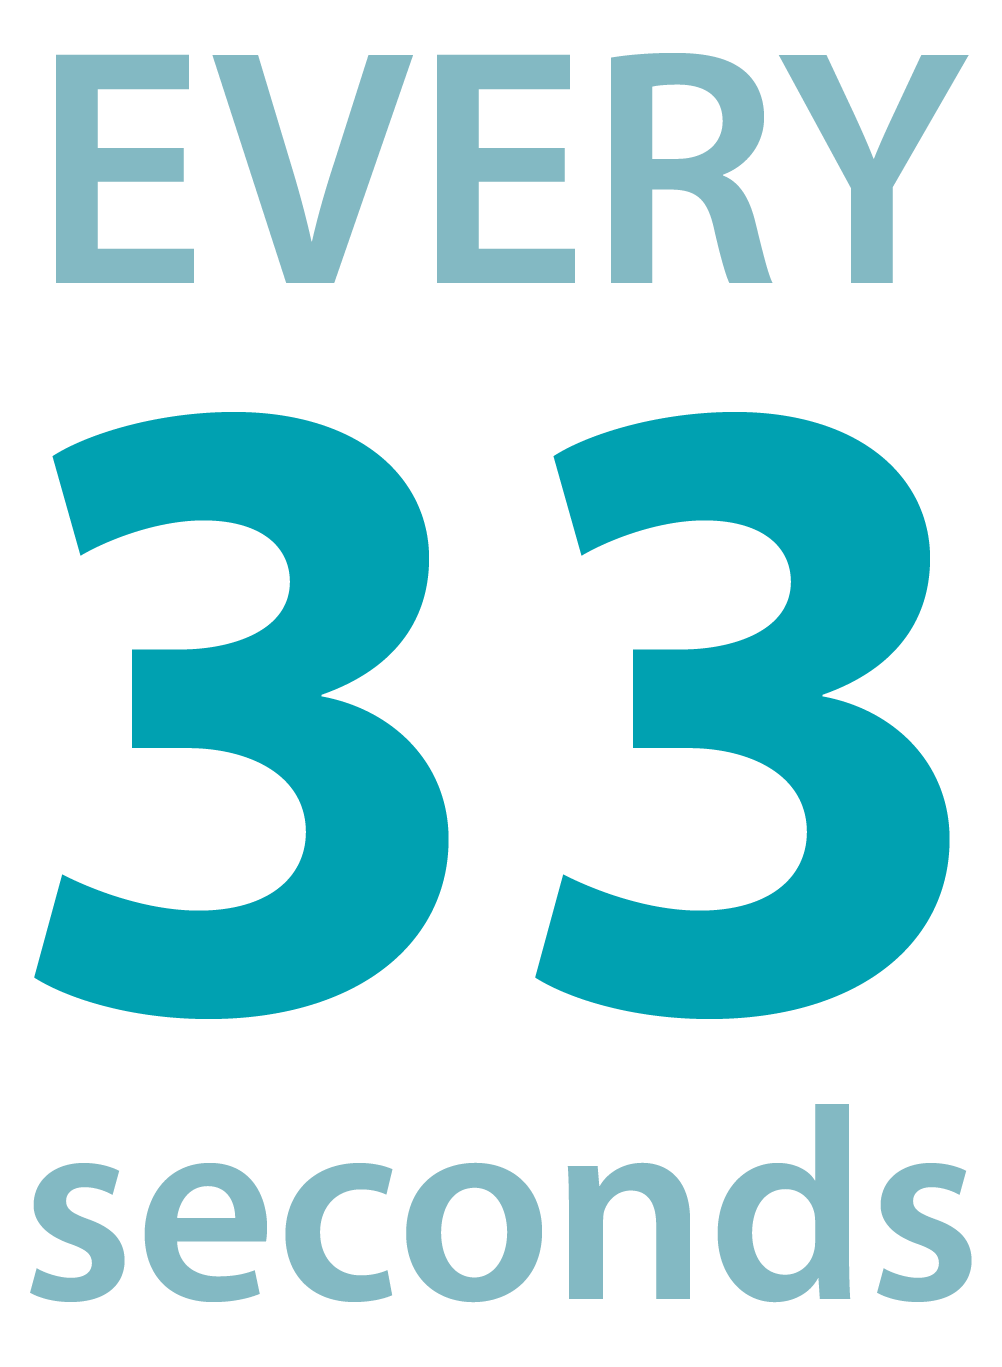 Every33Seconds